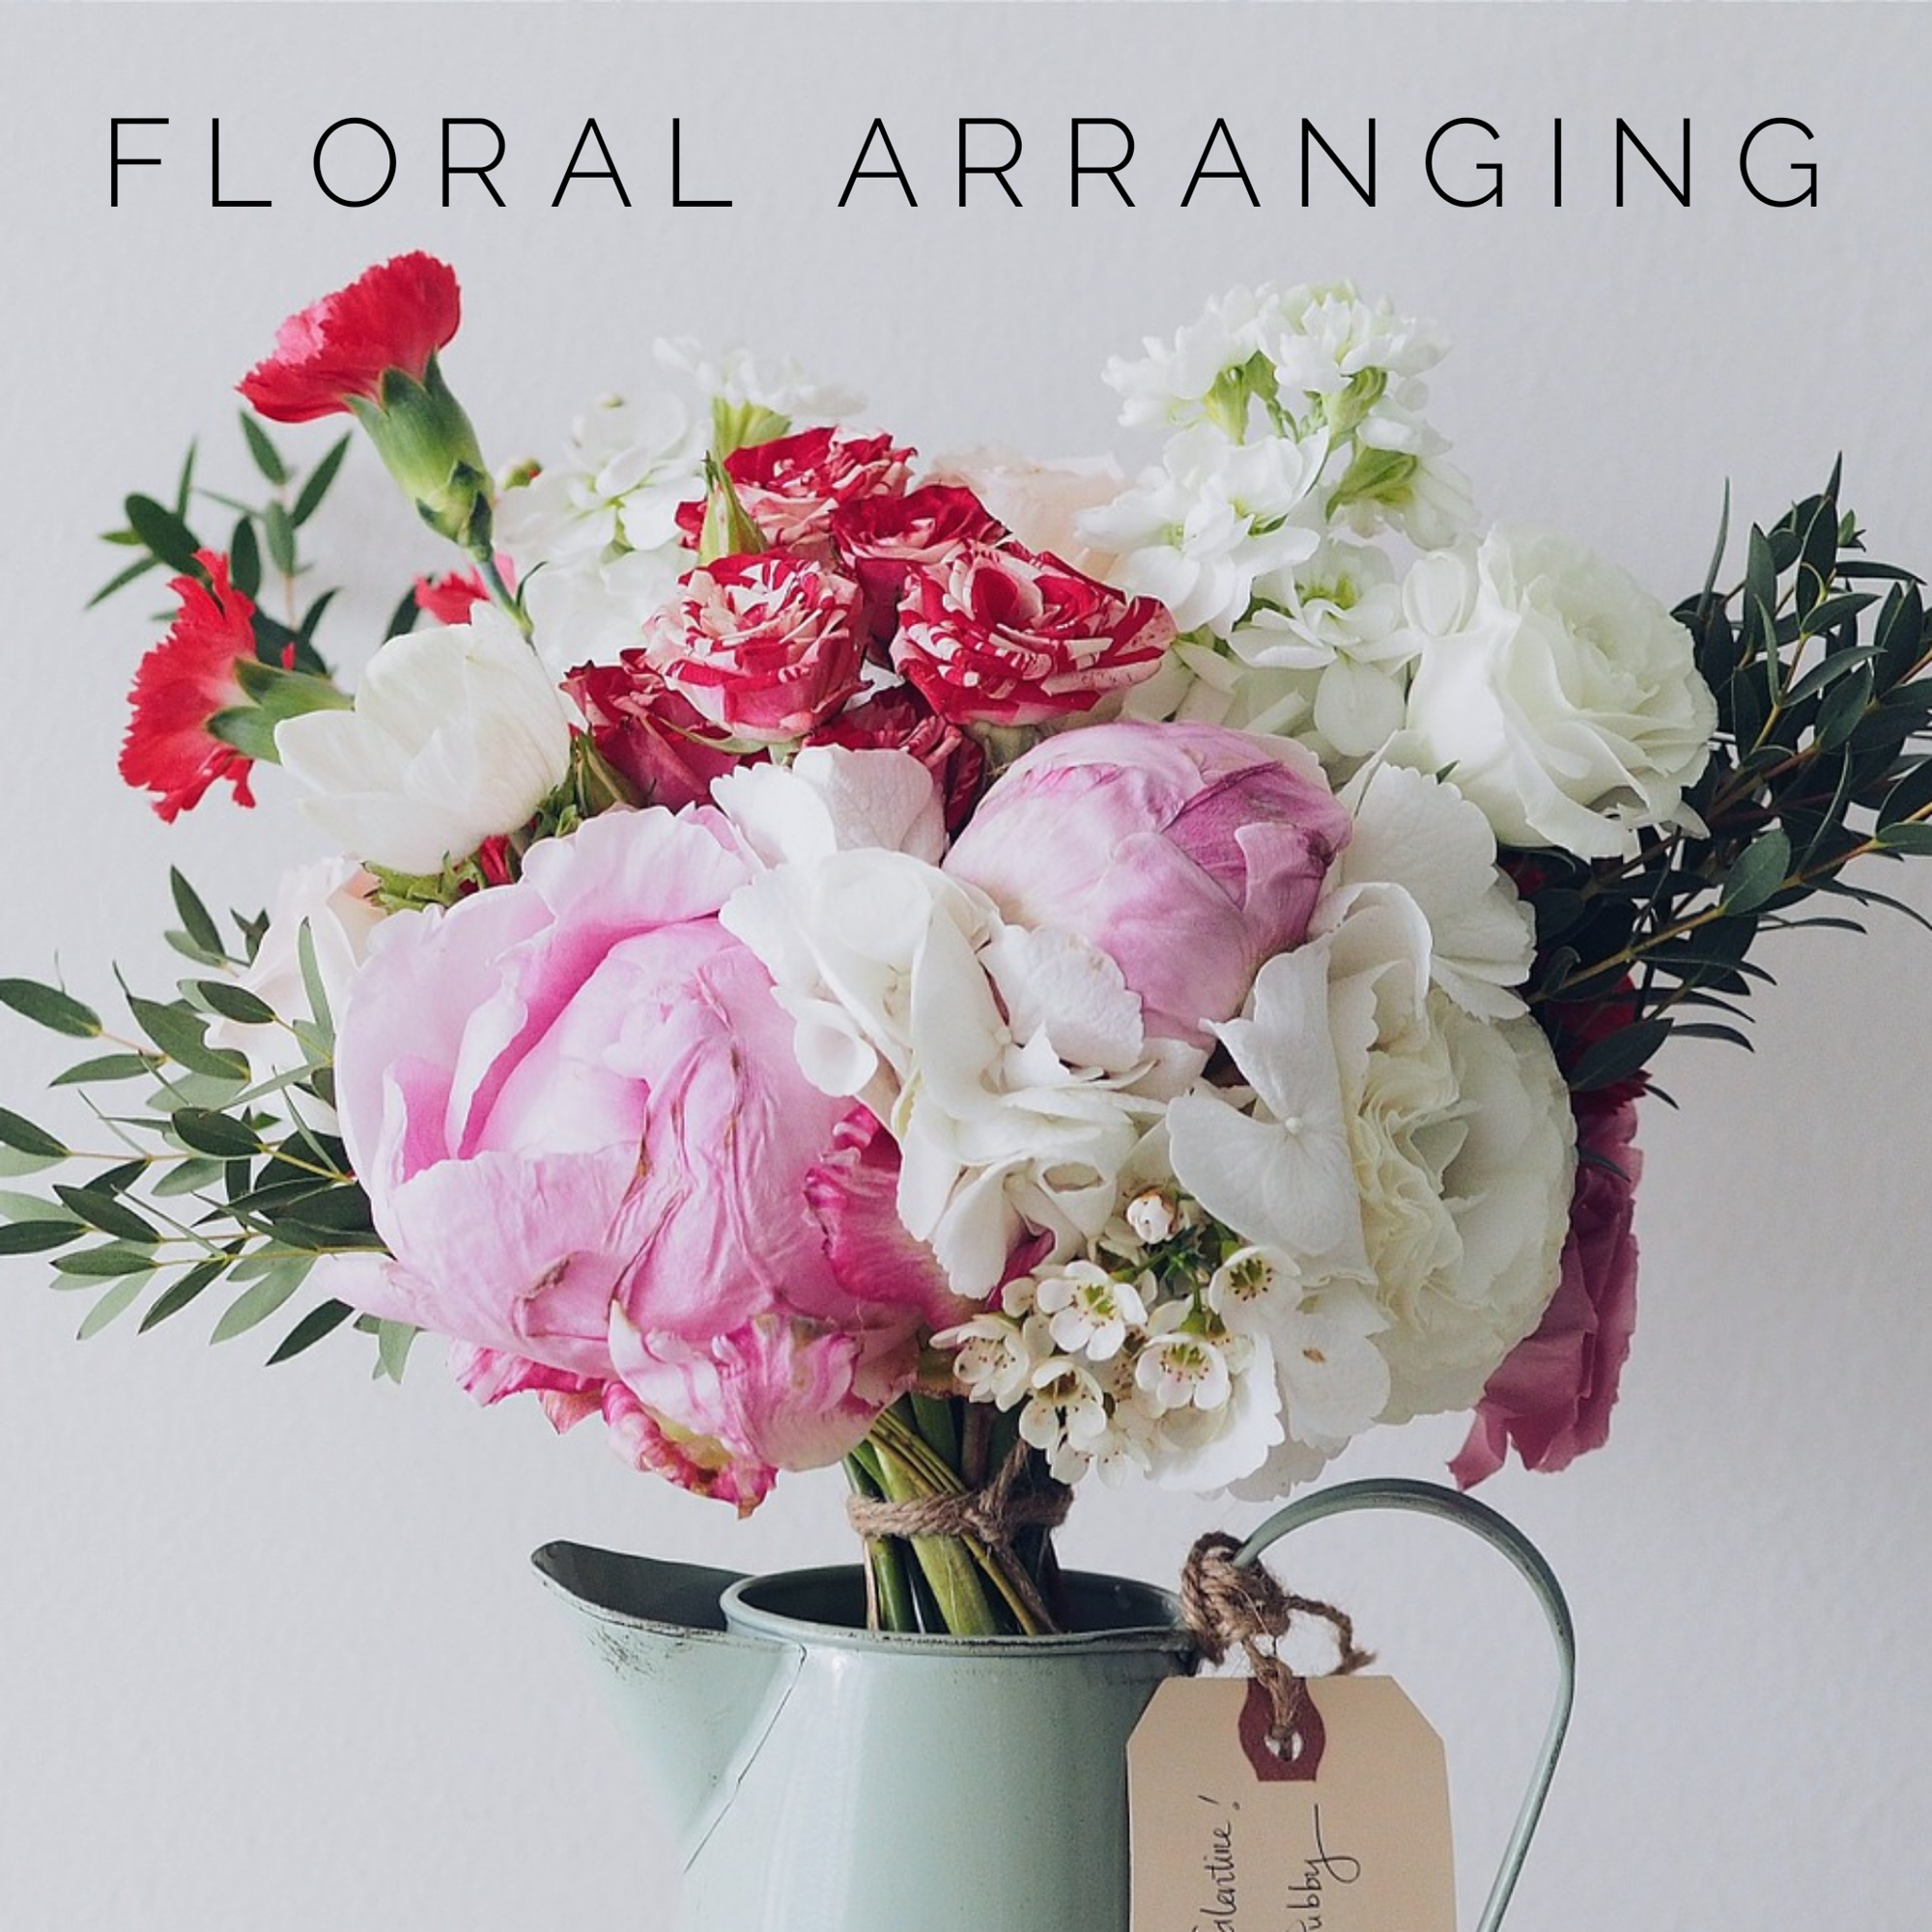 Floral Arranging Contest